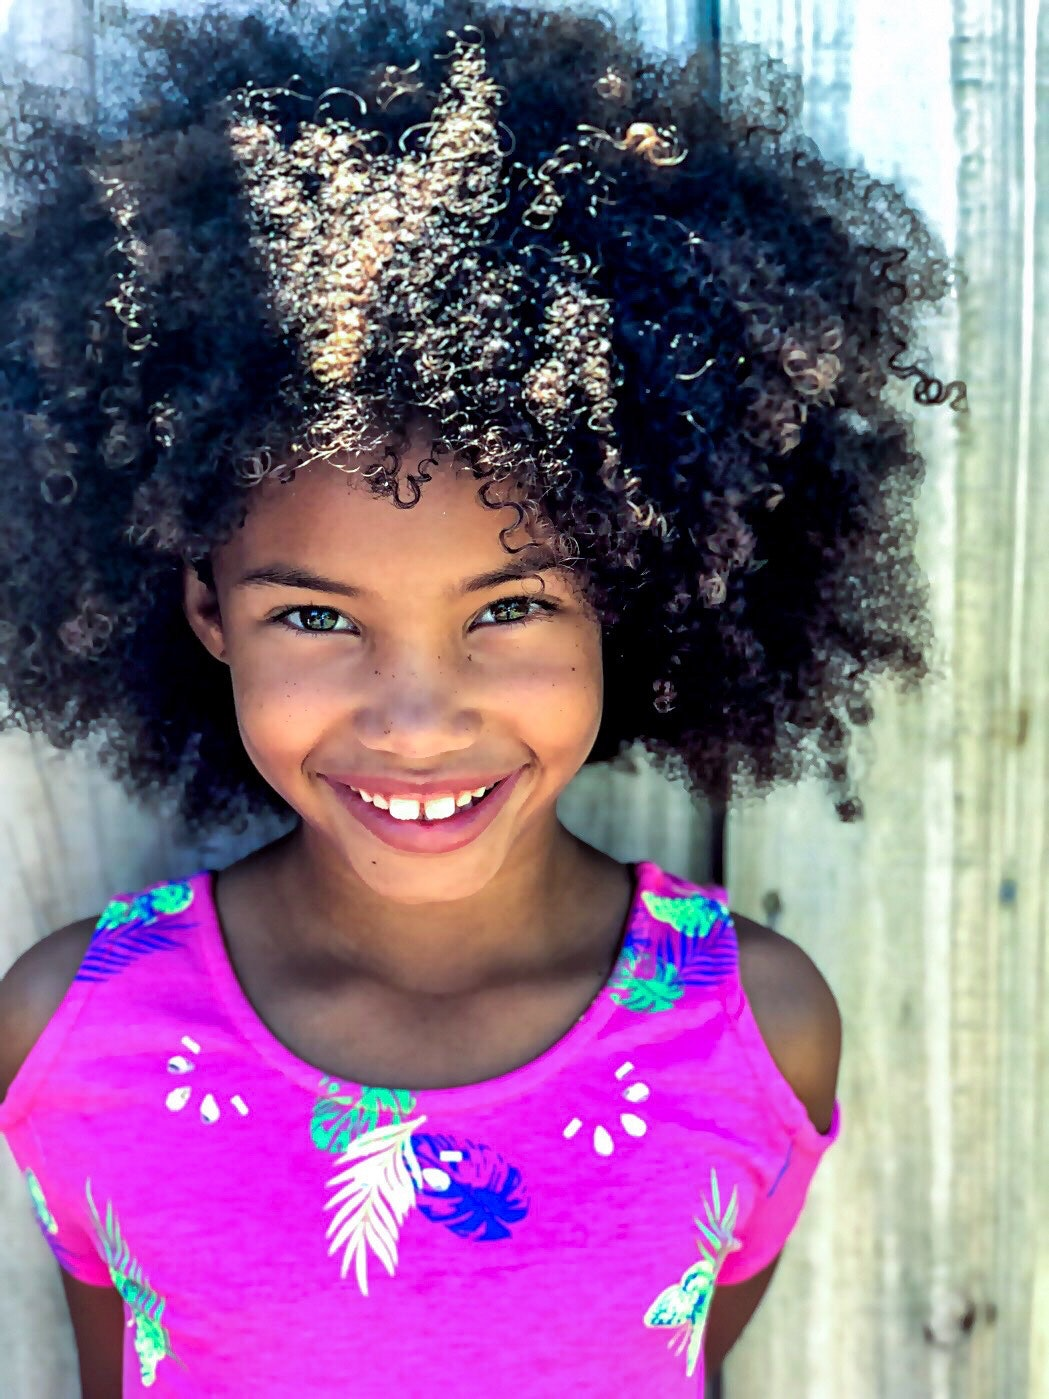 116 afro-beautiful-child-1068205.jpg